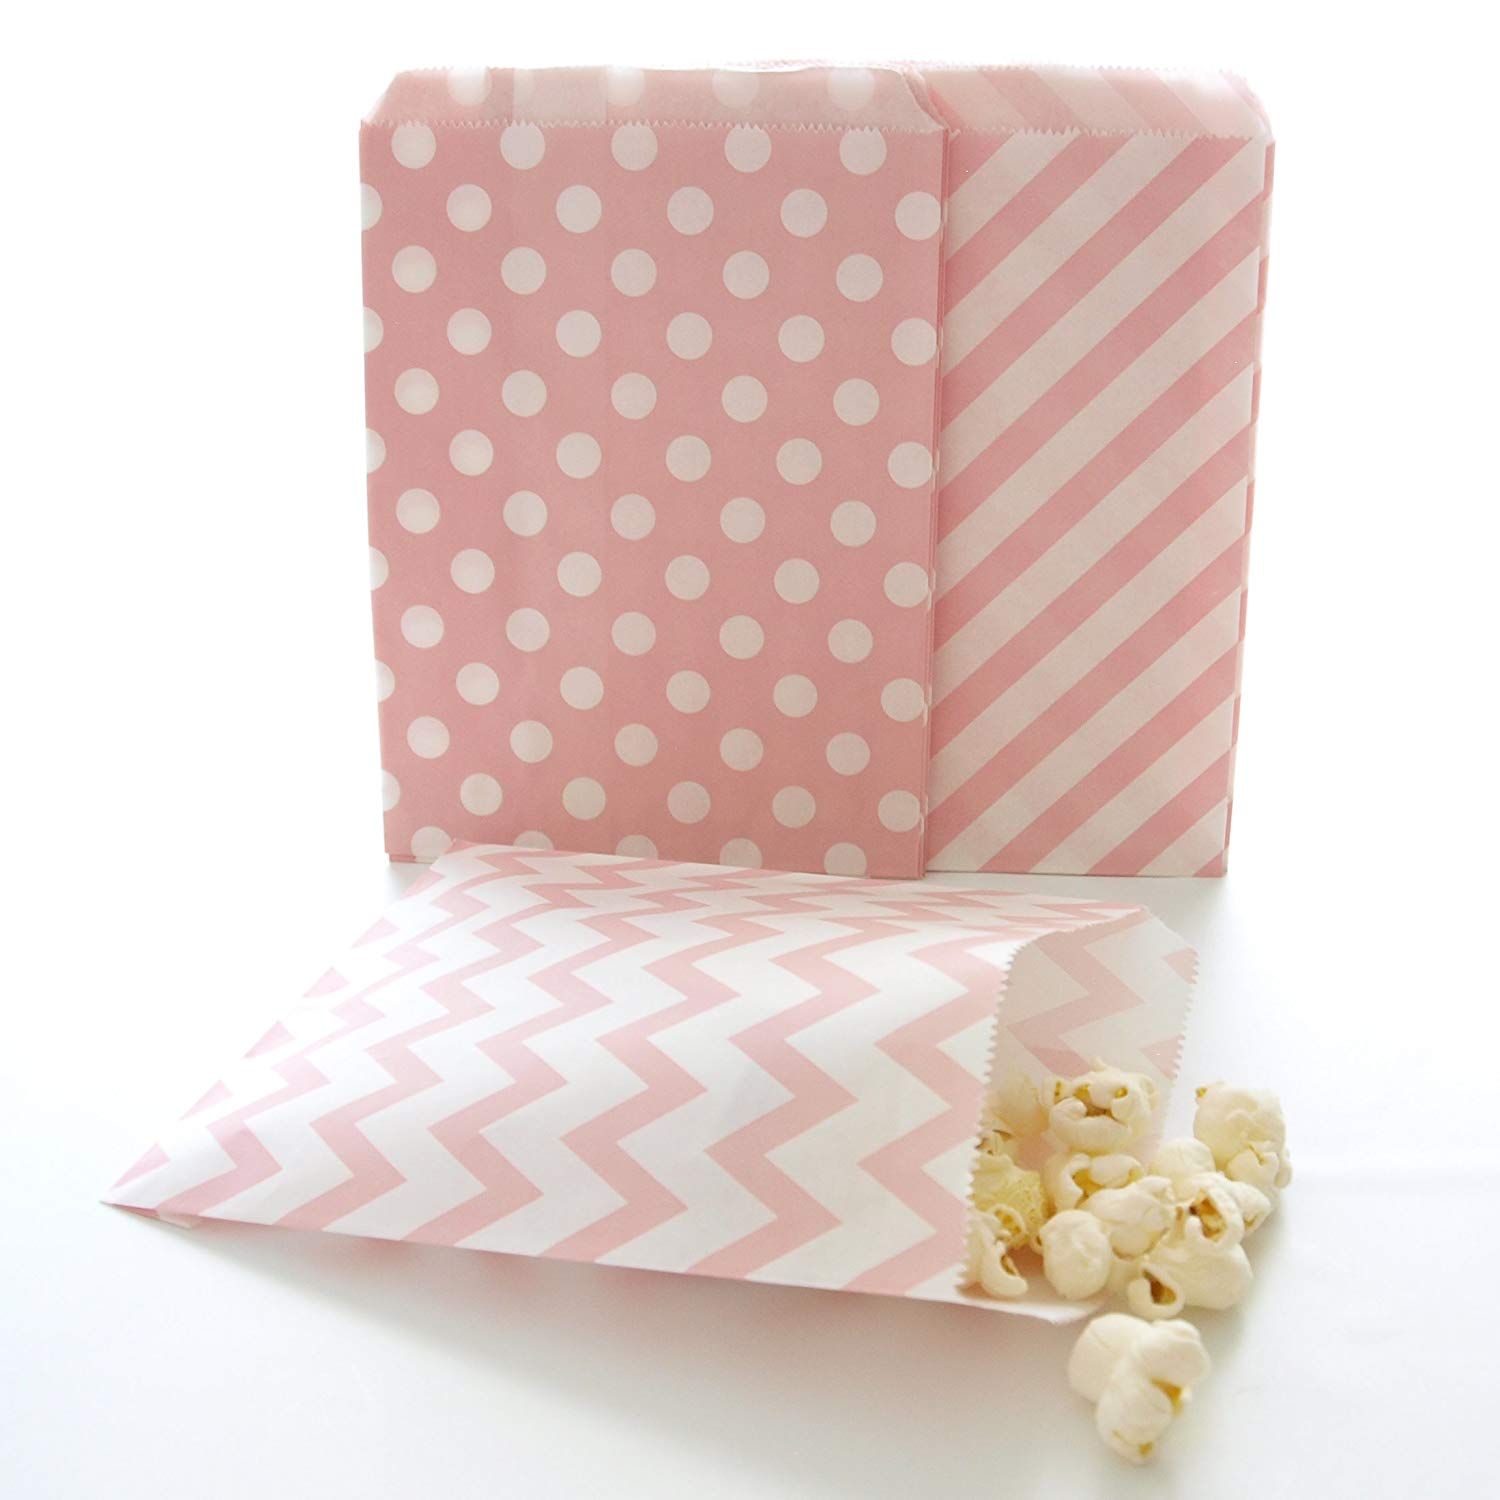 Pink Paper Bags, Wedding Candy Buffet Bags, Mini Treat Bags, Food Gift Bag, 75 Pack - Pink Striped, Polka Dot & Chevron Bags